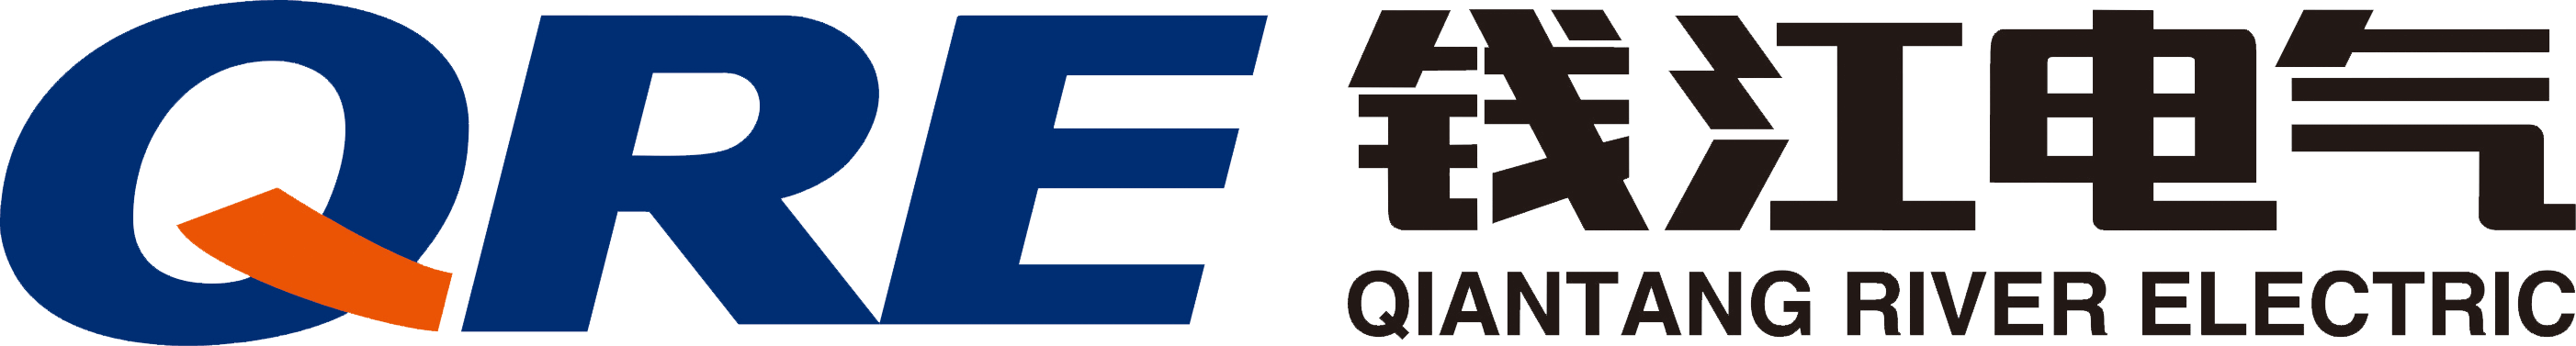 Hangzhou Qiantang River Electric Group Co., Ltd.(QRE)